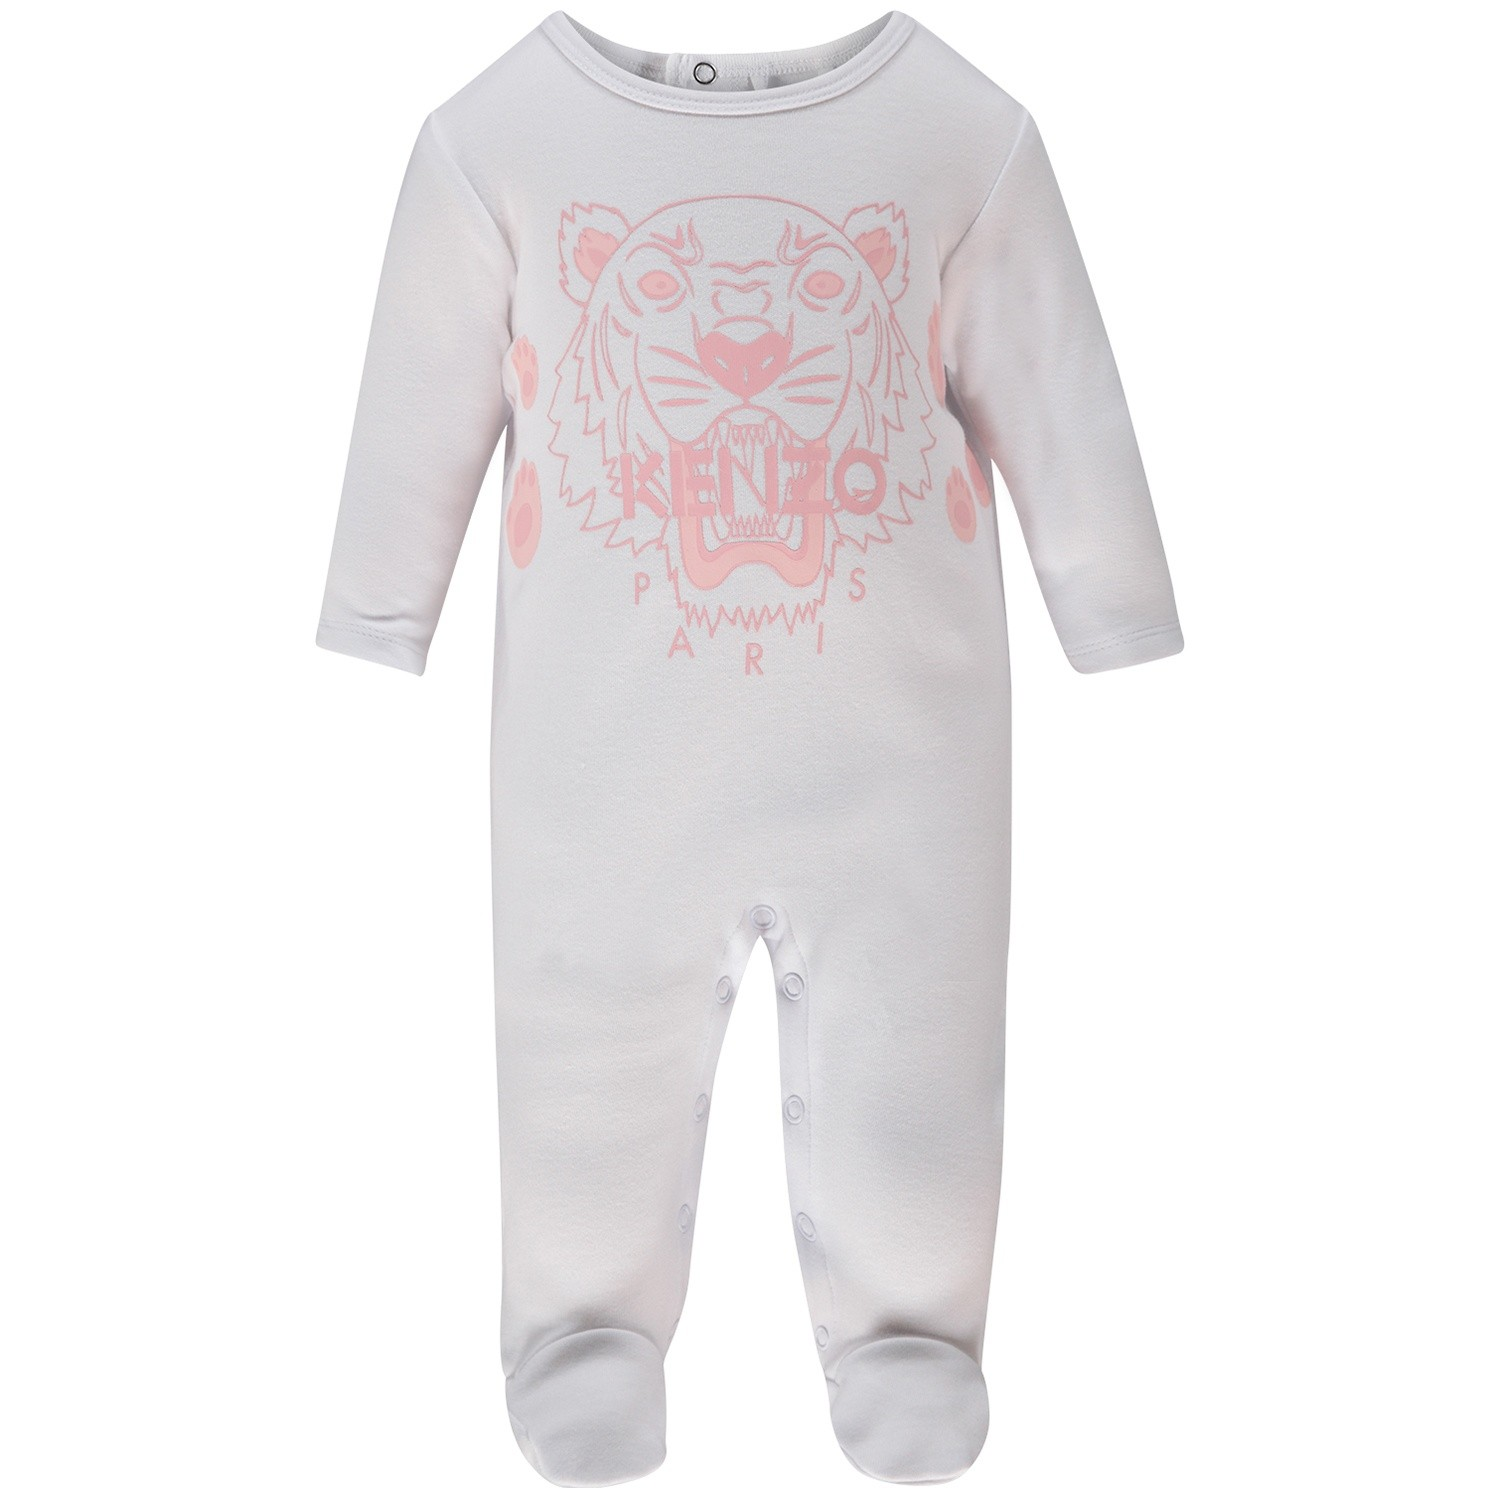 Picture of Kenzo KM54003 baby playsuit white